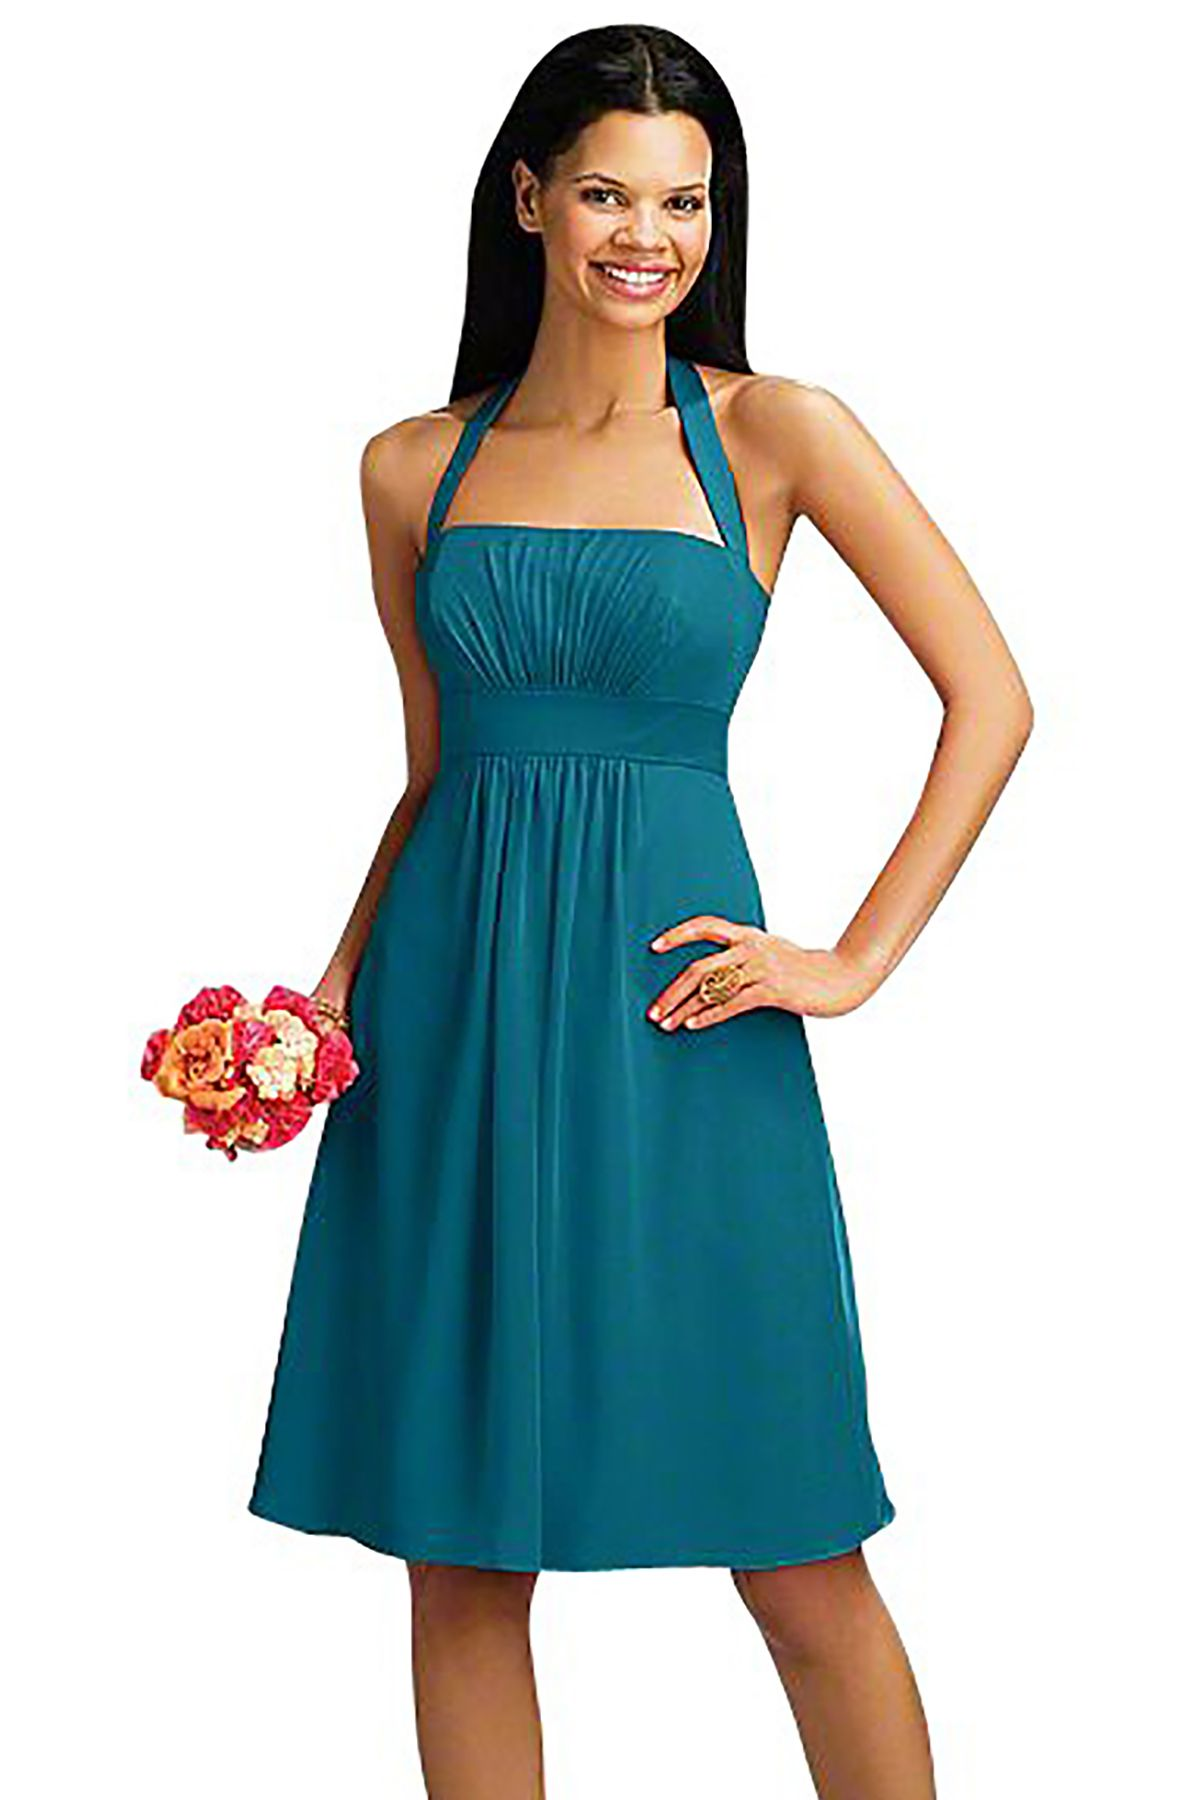 Alfred angelo 7016 s bridesmaid dress in turquoise in chiffon alfred angelo 7016 s bridesmaid dress in turquoise in chiffon ombrellifo Gallery